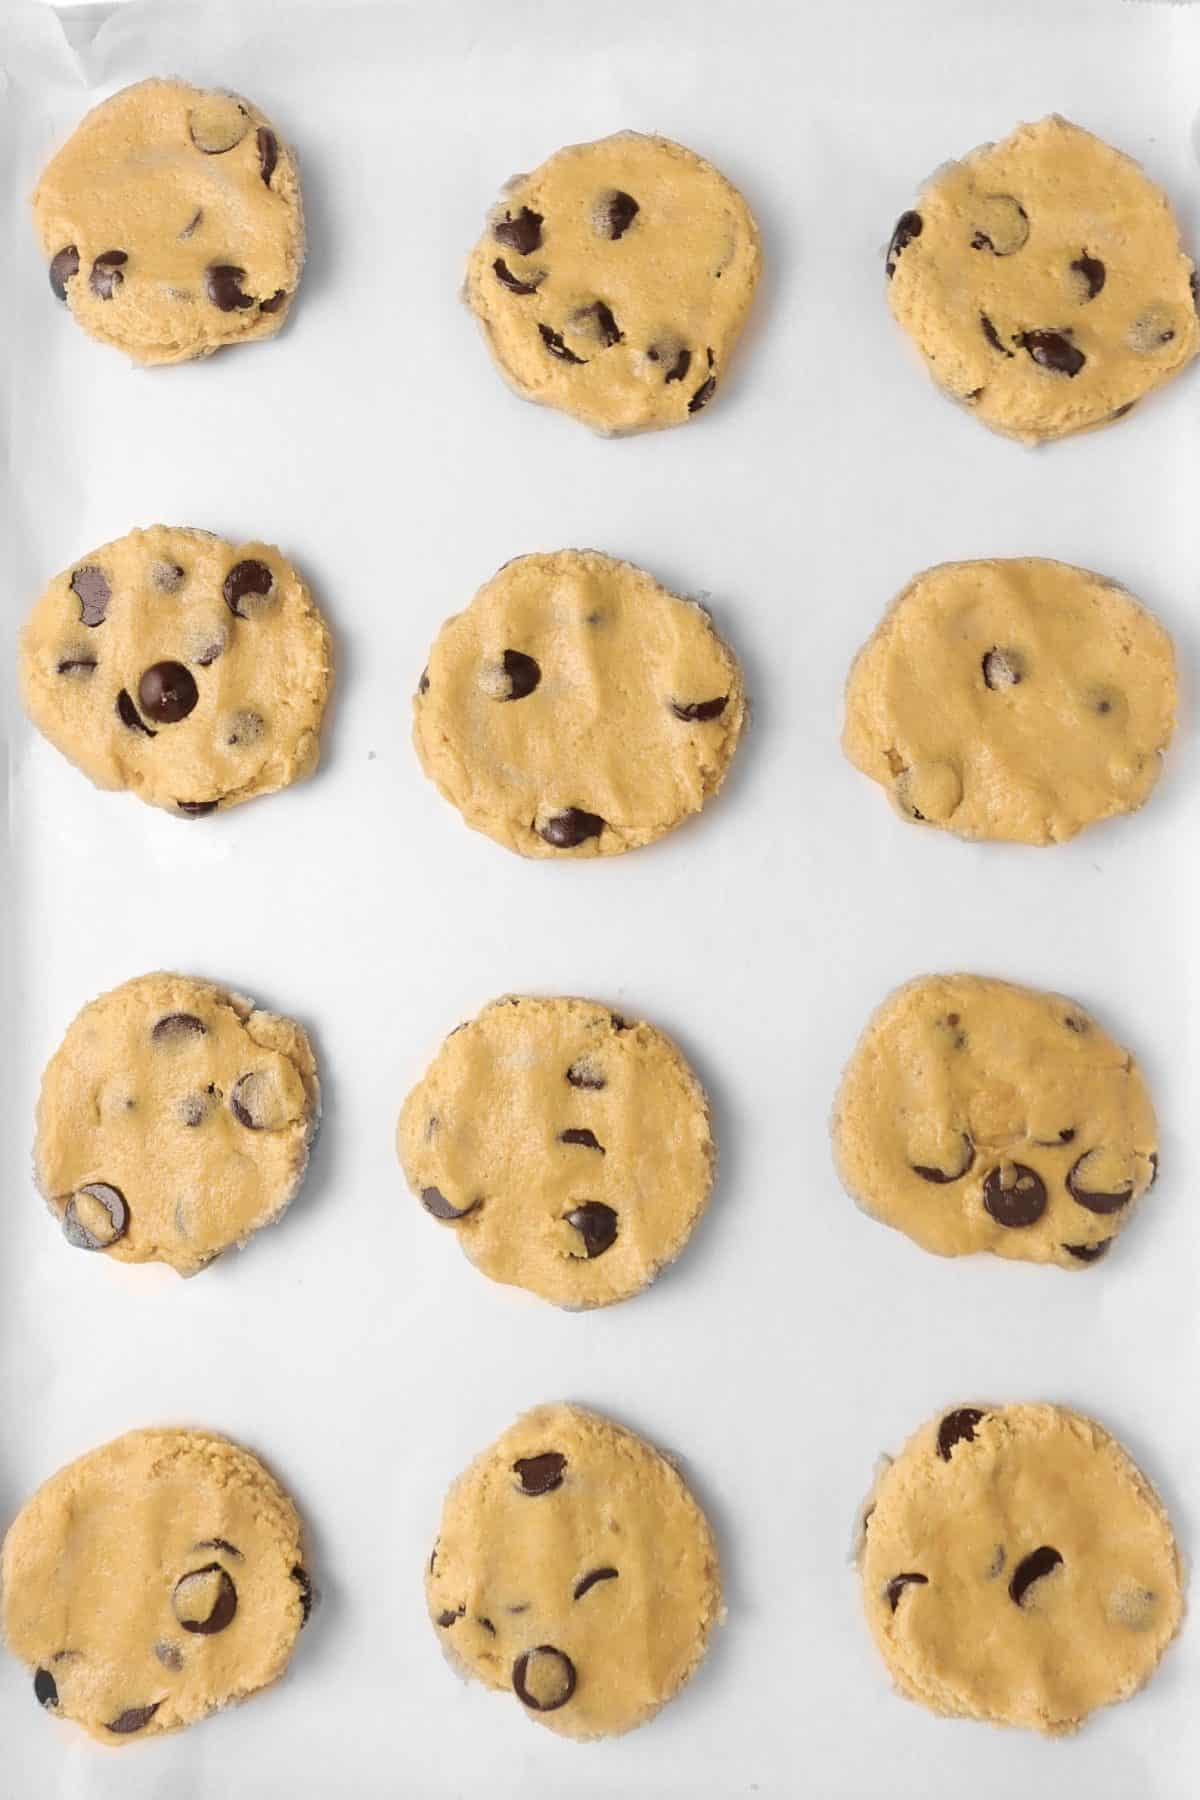 peanut butter and chocolate chip cookie dough pressed down onto a baking sheet